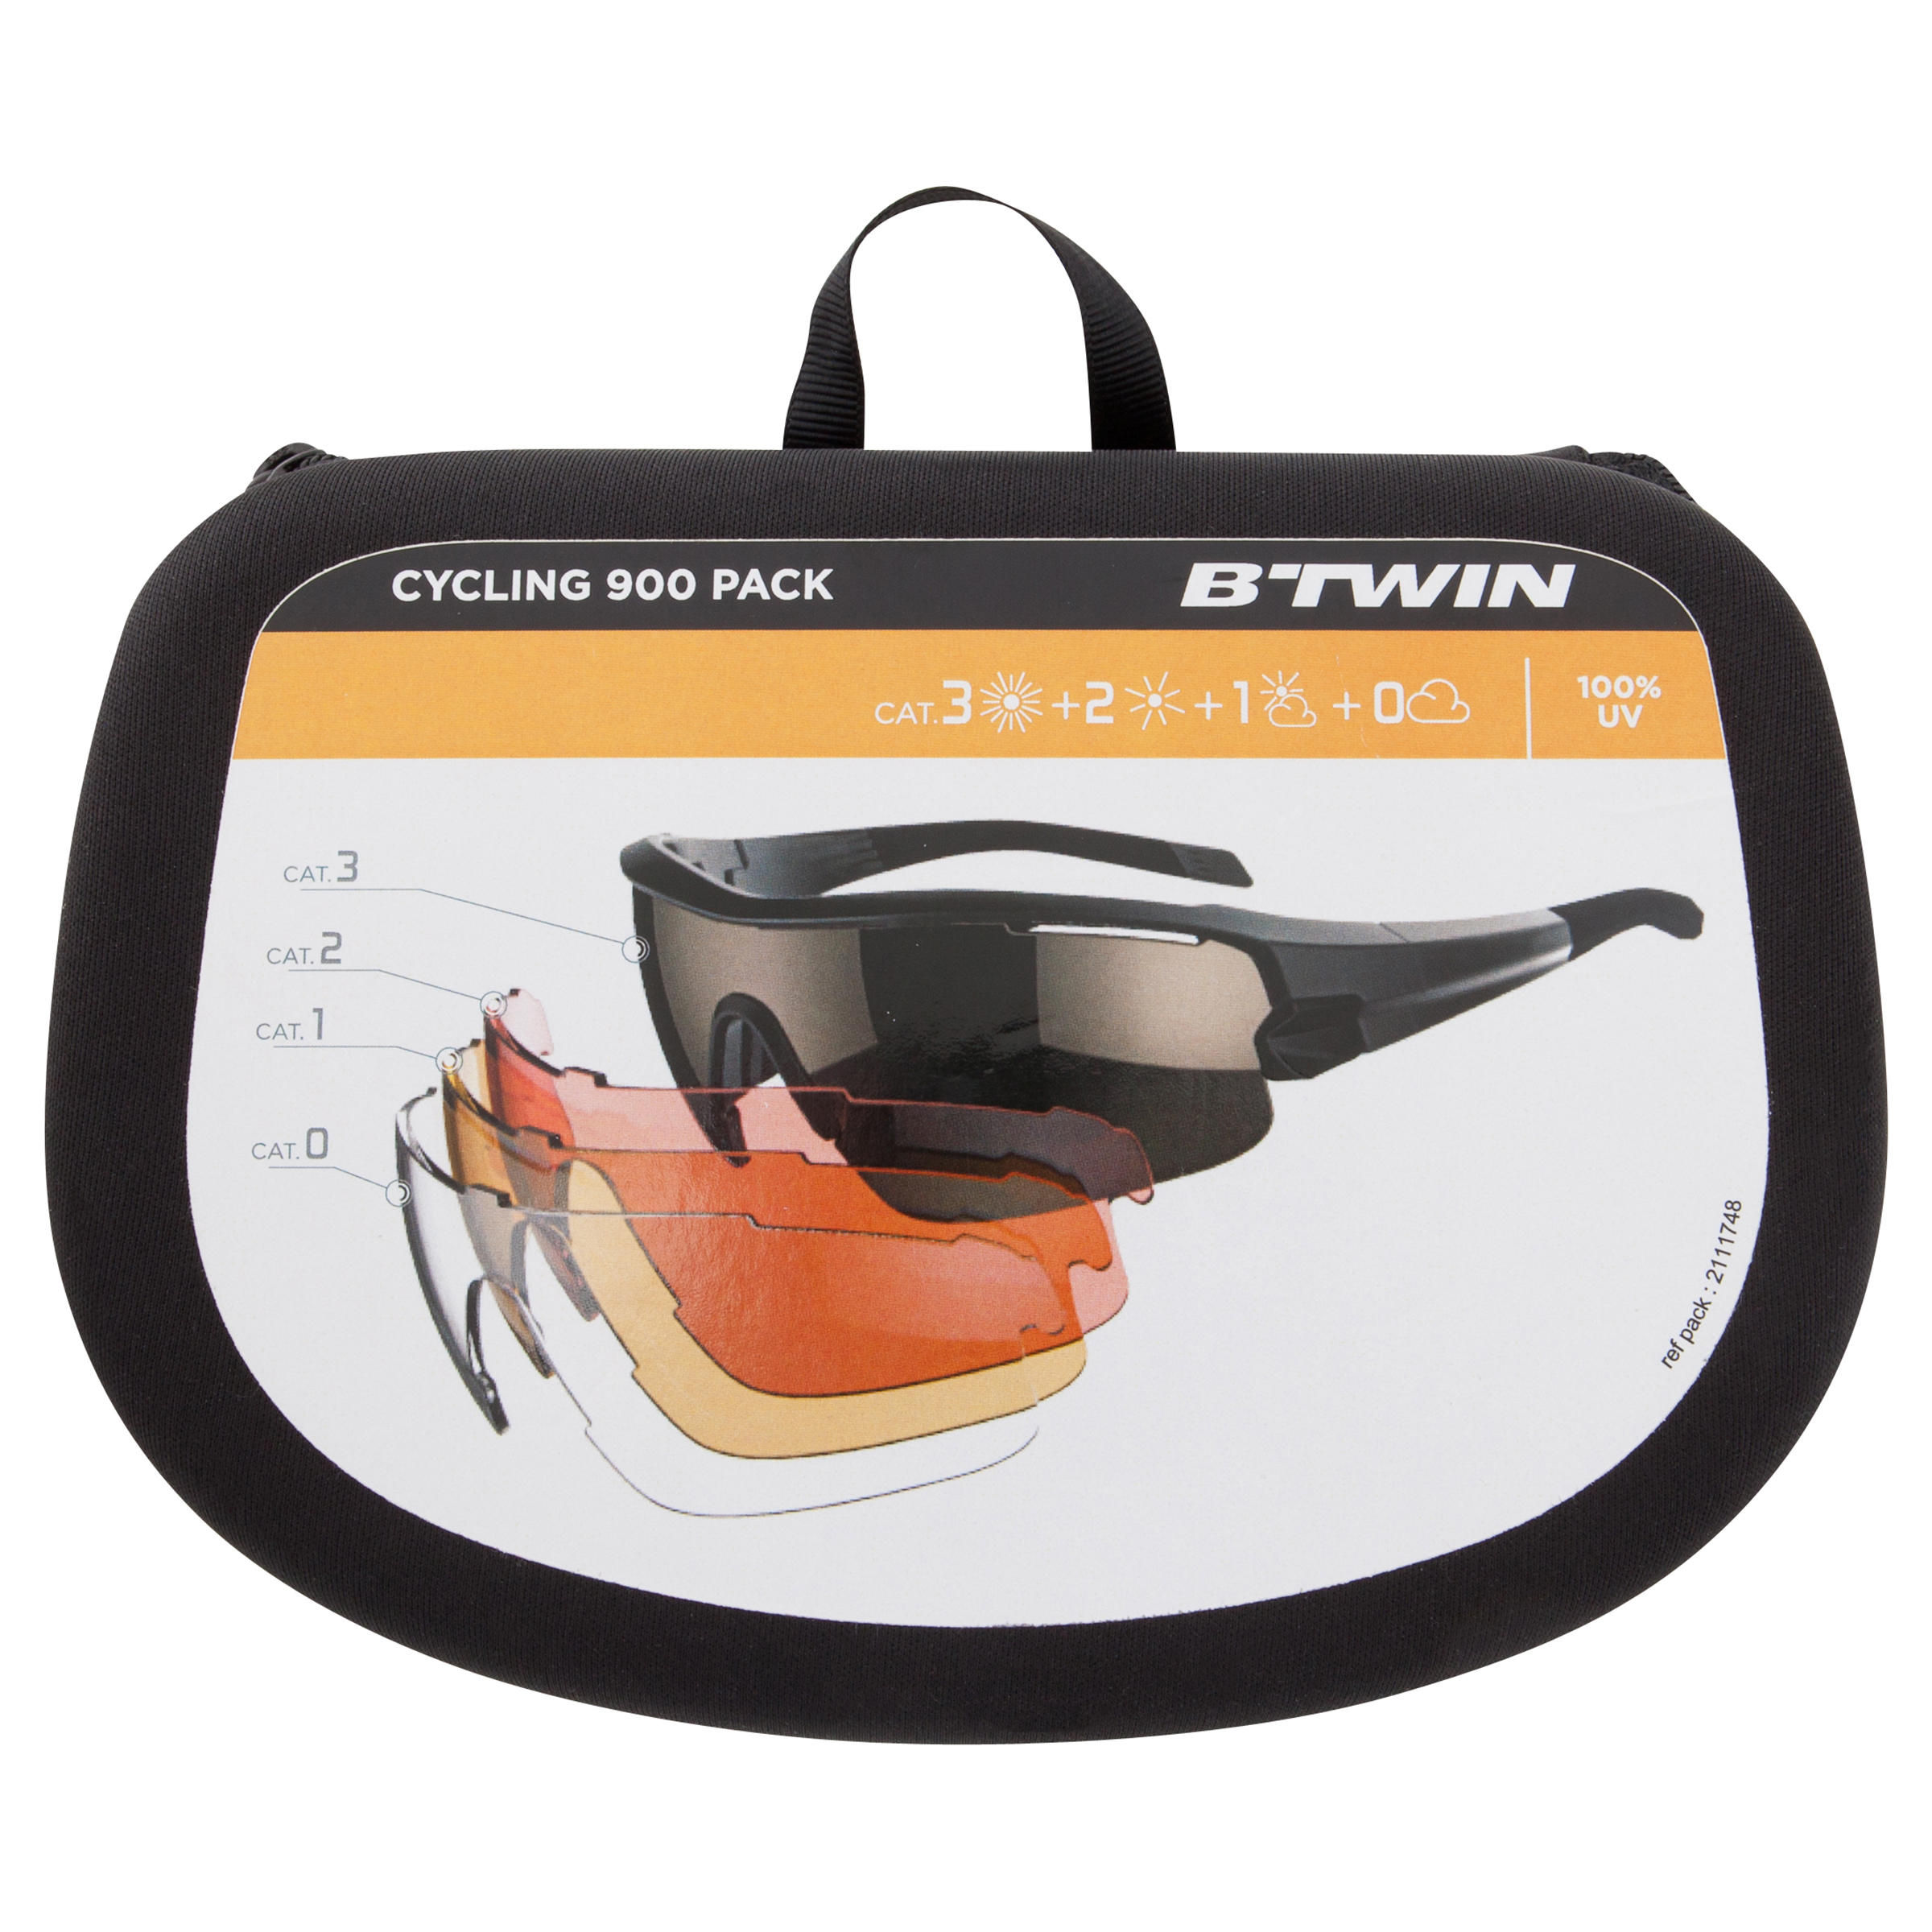 Cycling Roadr 900 Grey Pack Adult Sunglasses - 4 Interchangeable Lenses